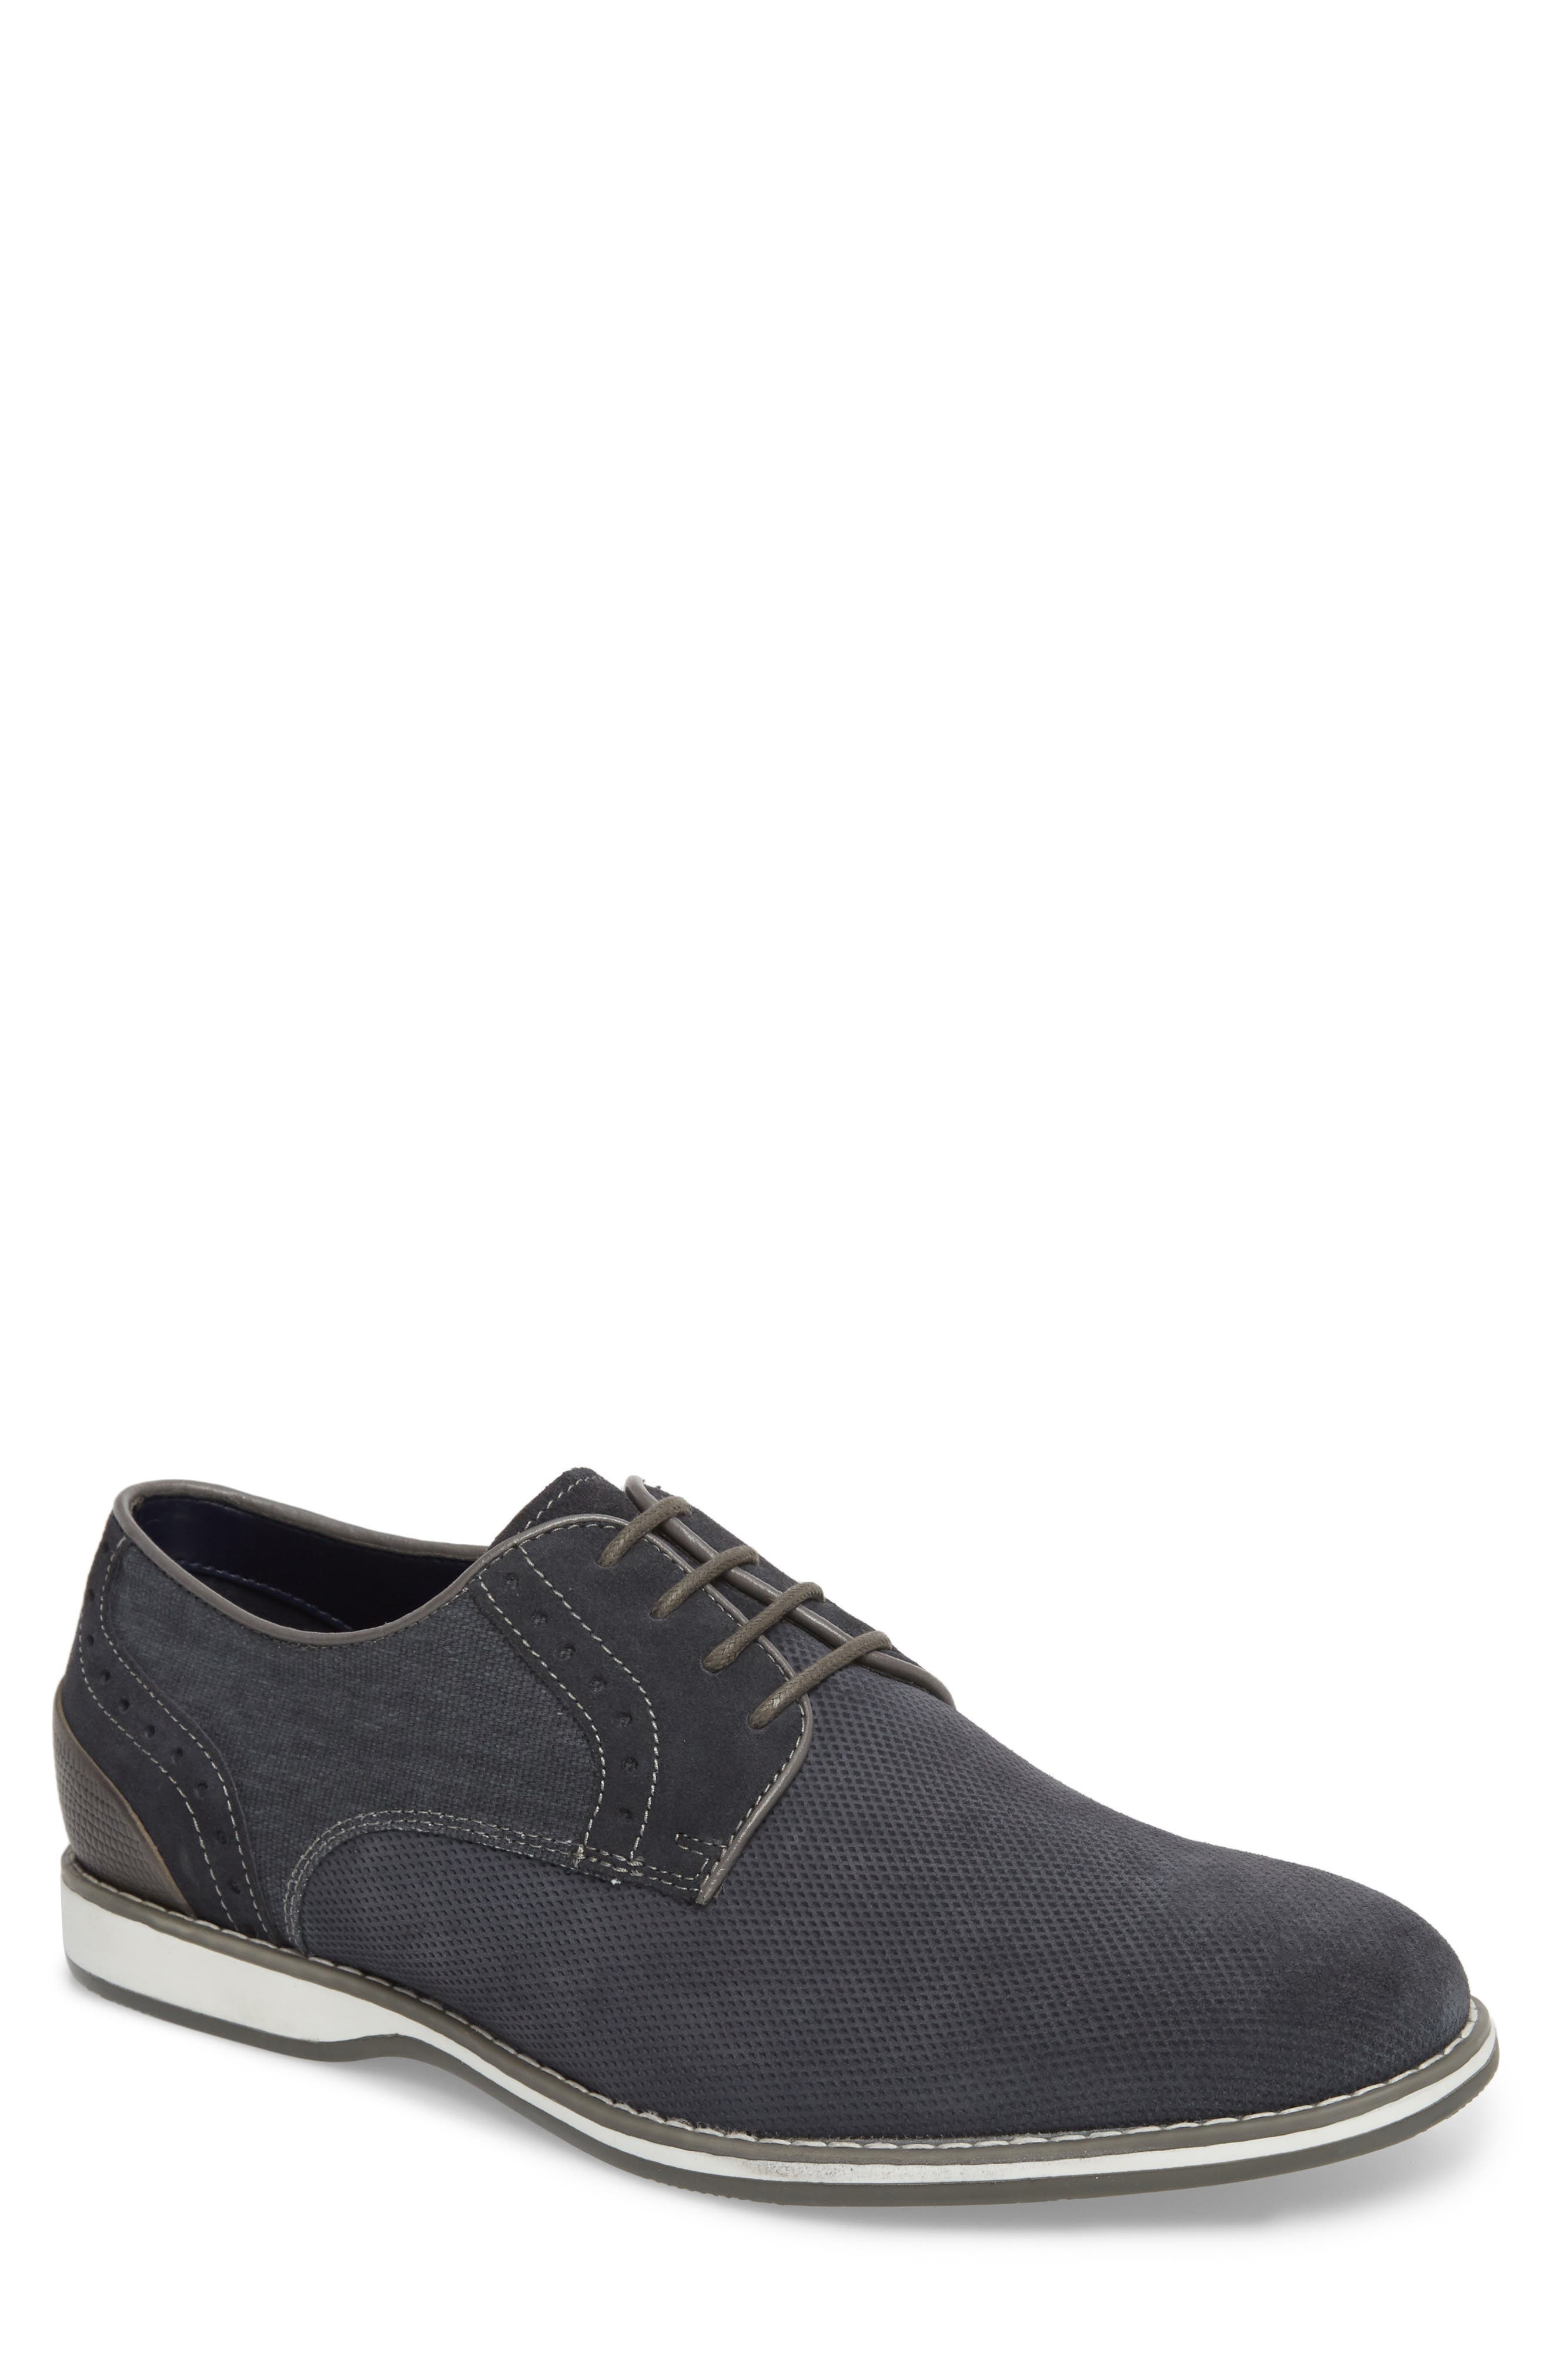 REACTION KENNETH COLE, Weiser Lace-up Derby, Main thumbnail 1, color, 410